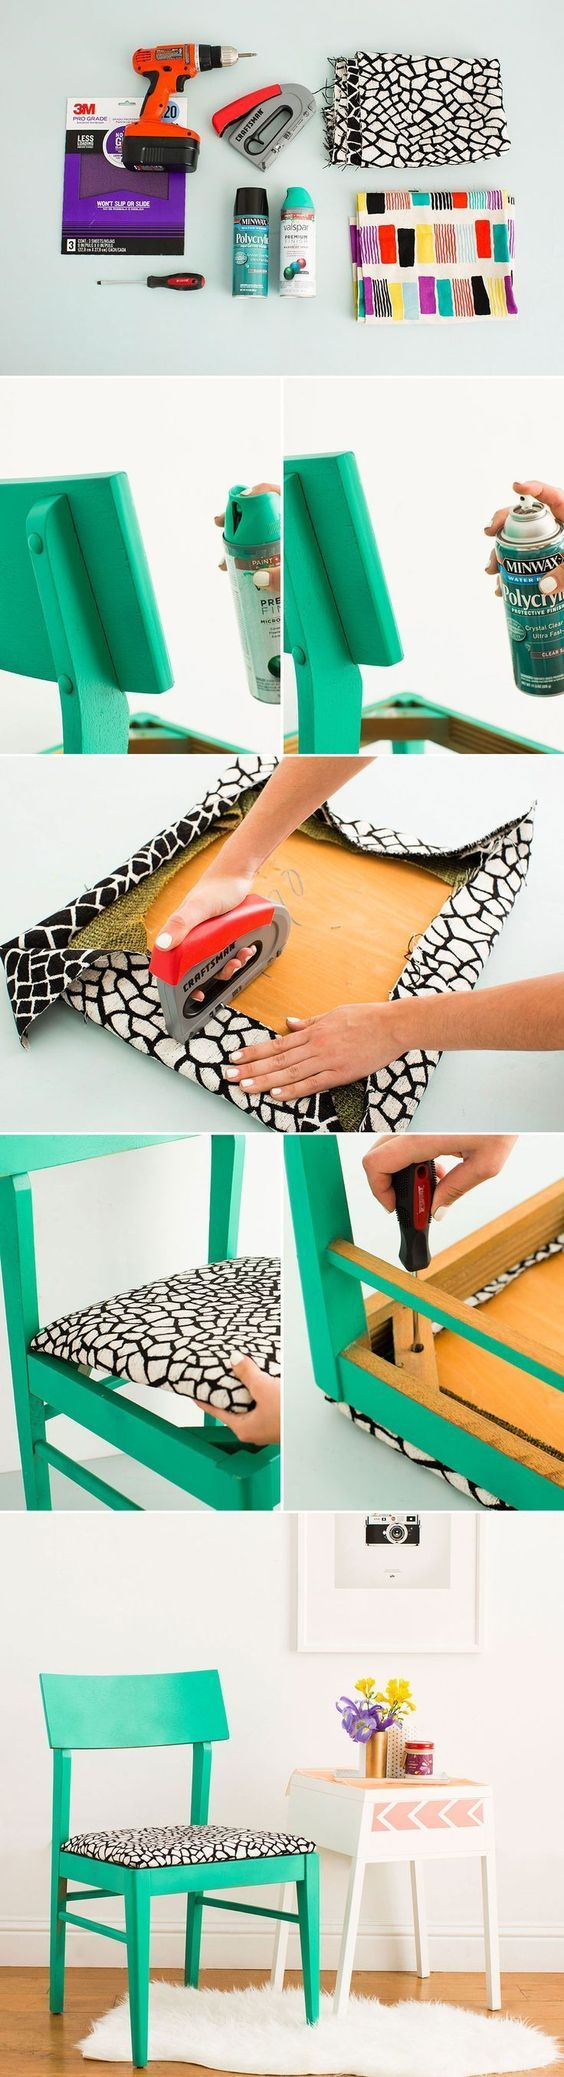 20 DIY Chair Makeovers, #14 Is The Best Bar Stool I've Ever Seen. - http://www.lifebuzz.com/chair-makeovers/